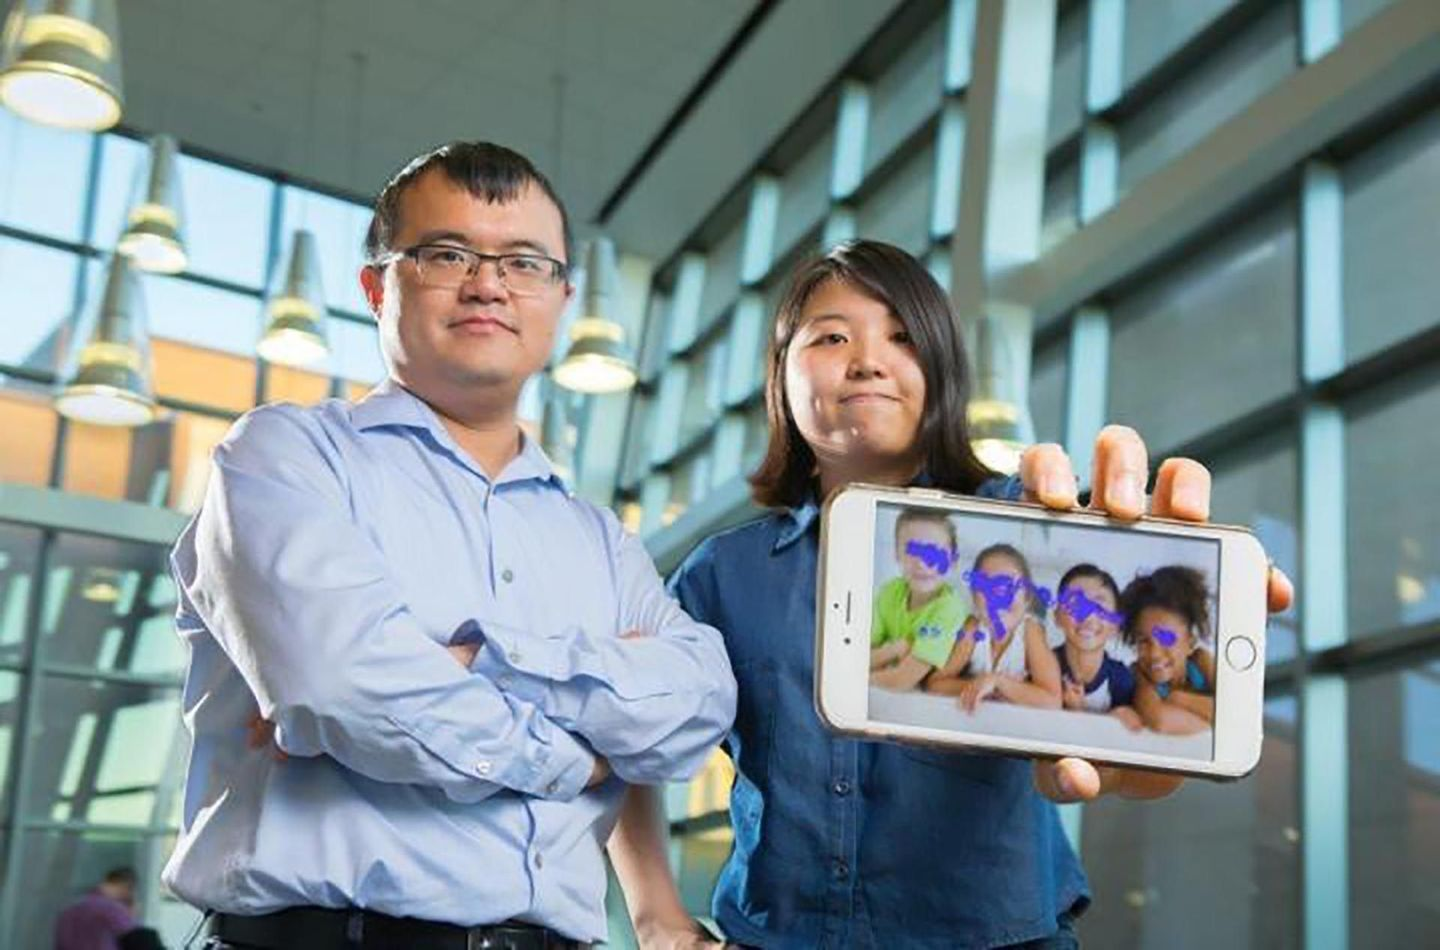 This eye-tracking app could speed-up autism detection - Wired.co.uk ...